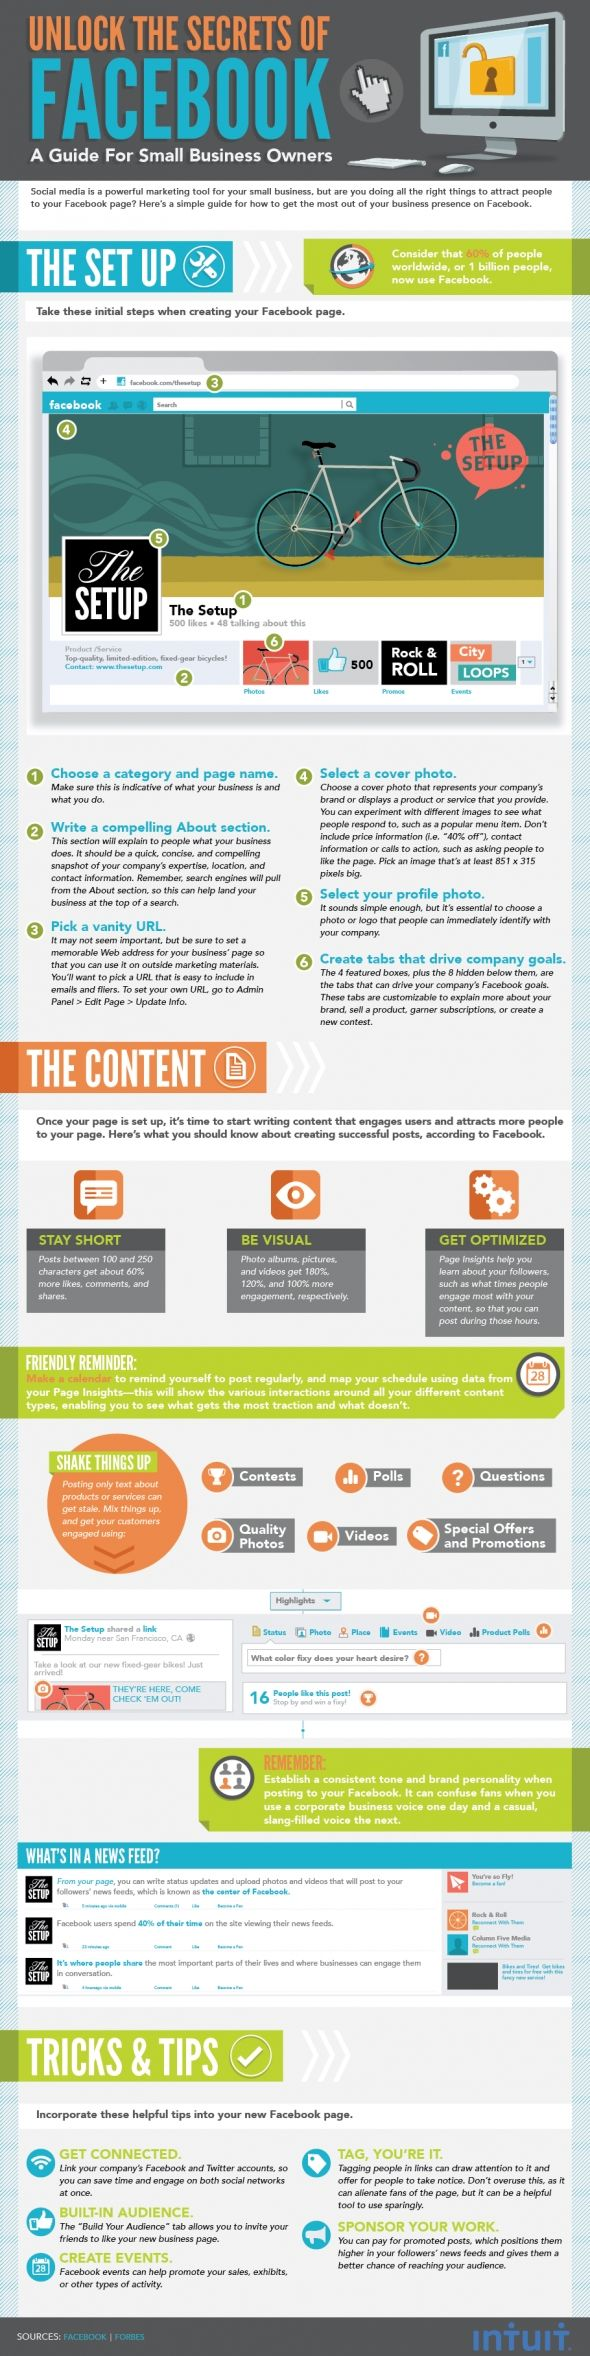 IntuitFacebookPages101Infographic